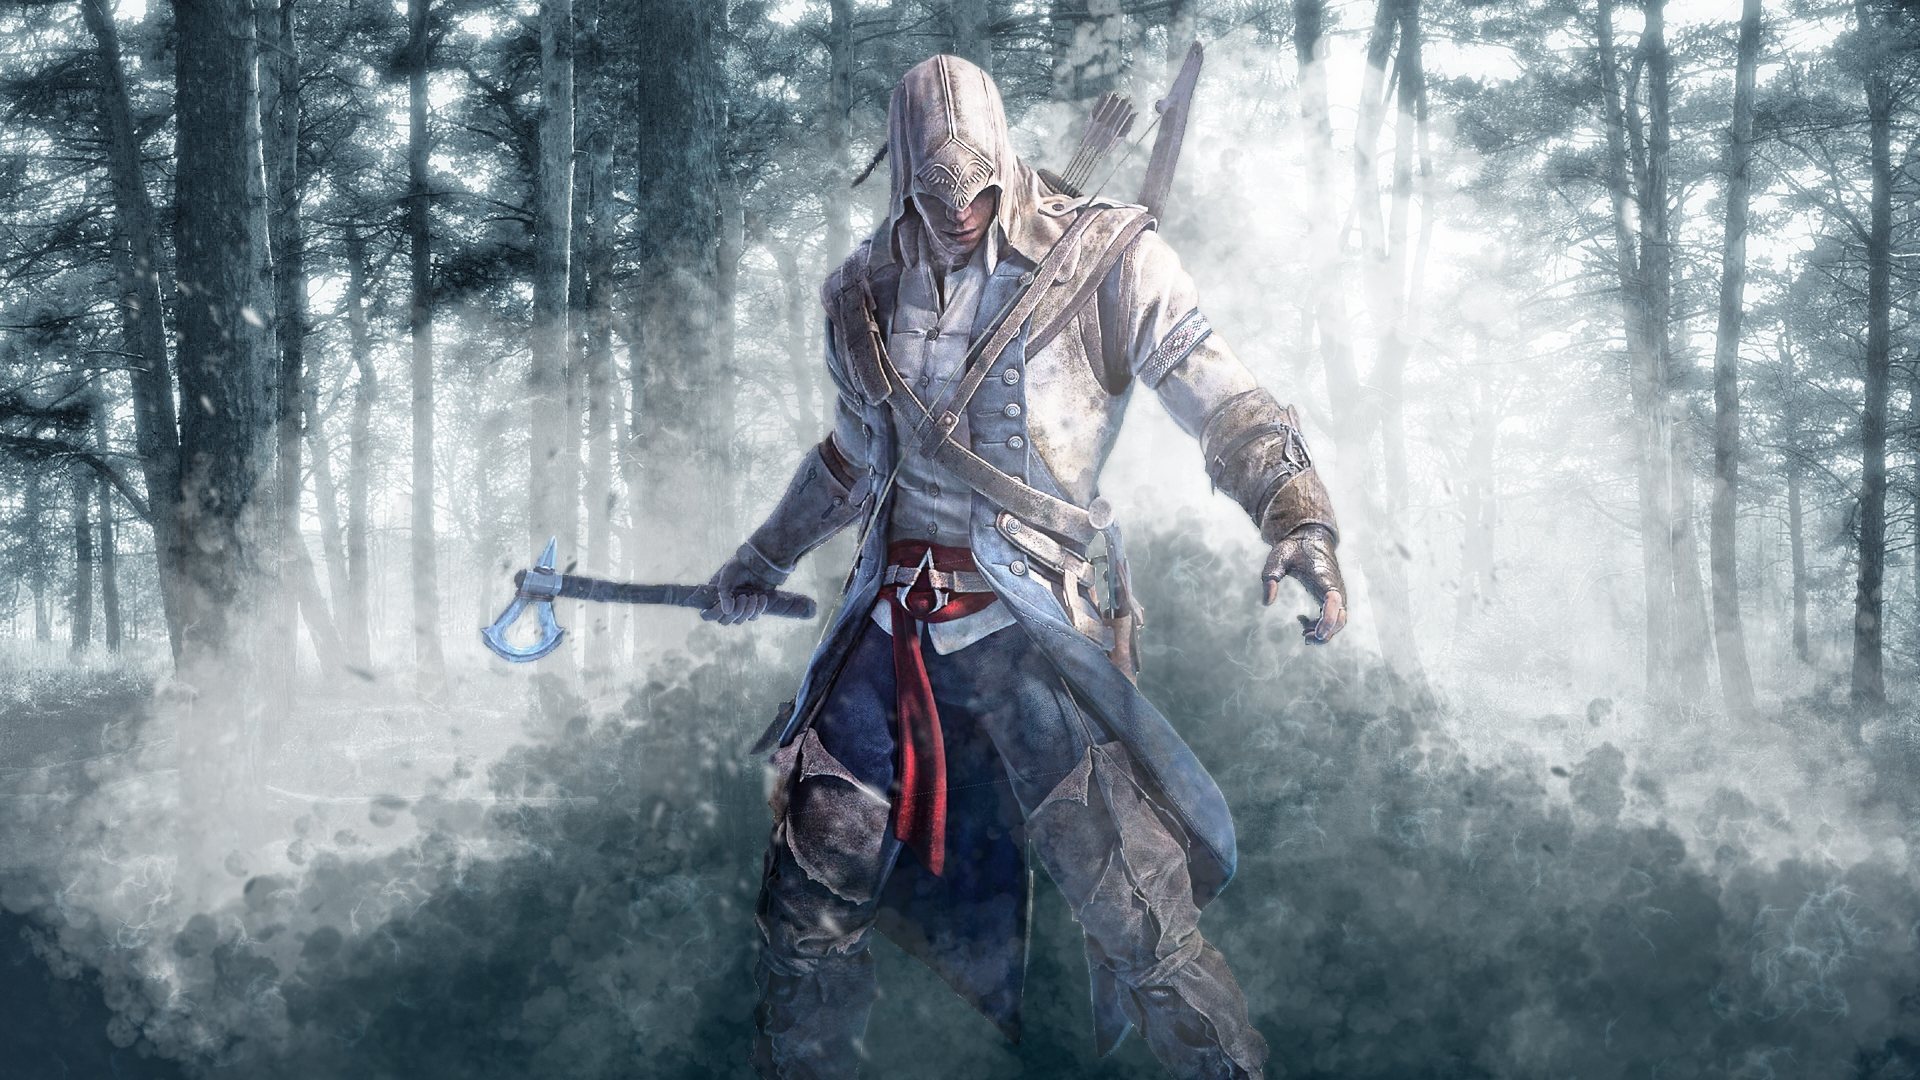 Assassins Creed wallpaper 199604 1920x1080